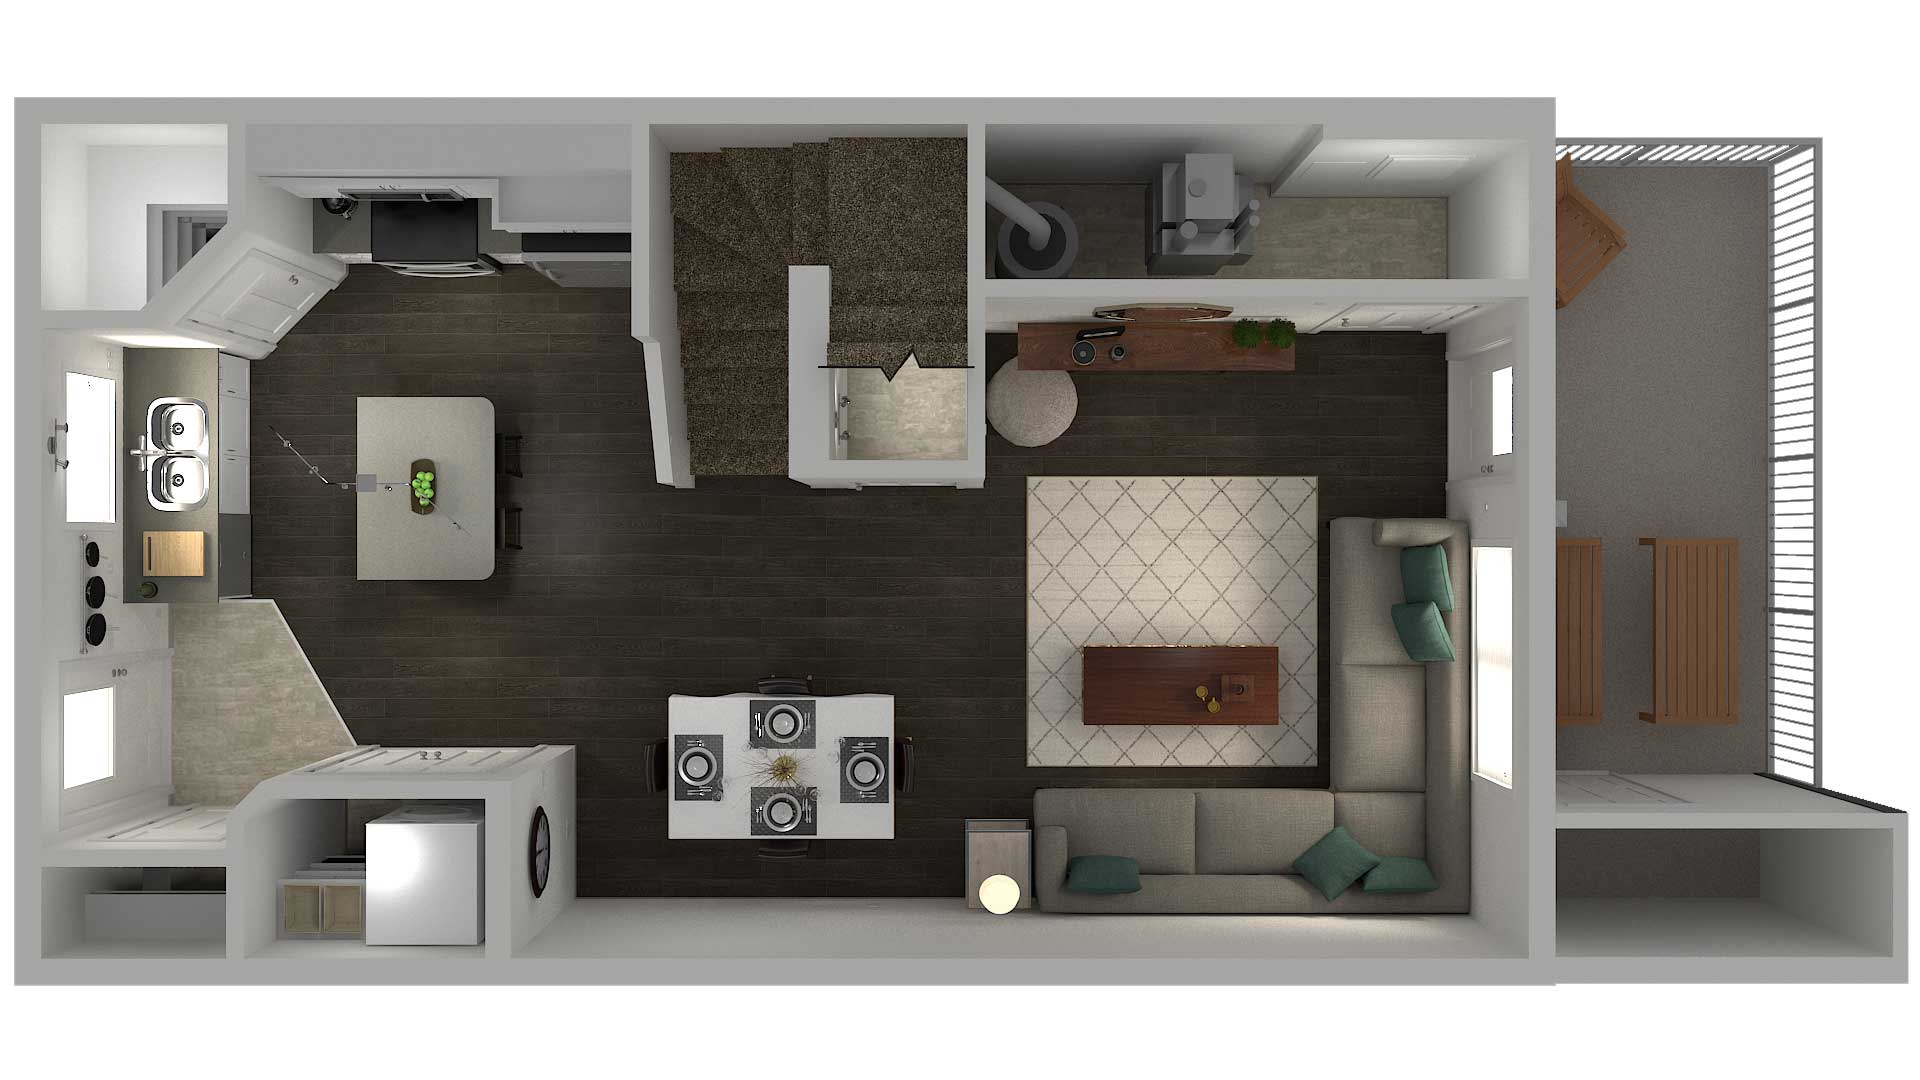 Cory Vistas 3 Bedroom Townhouse See 1st Floor plan